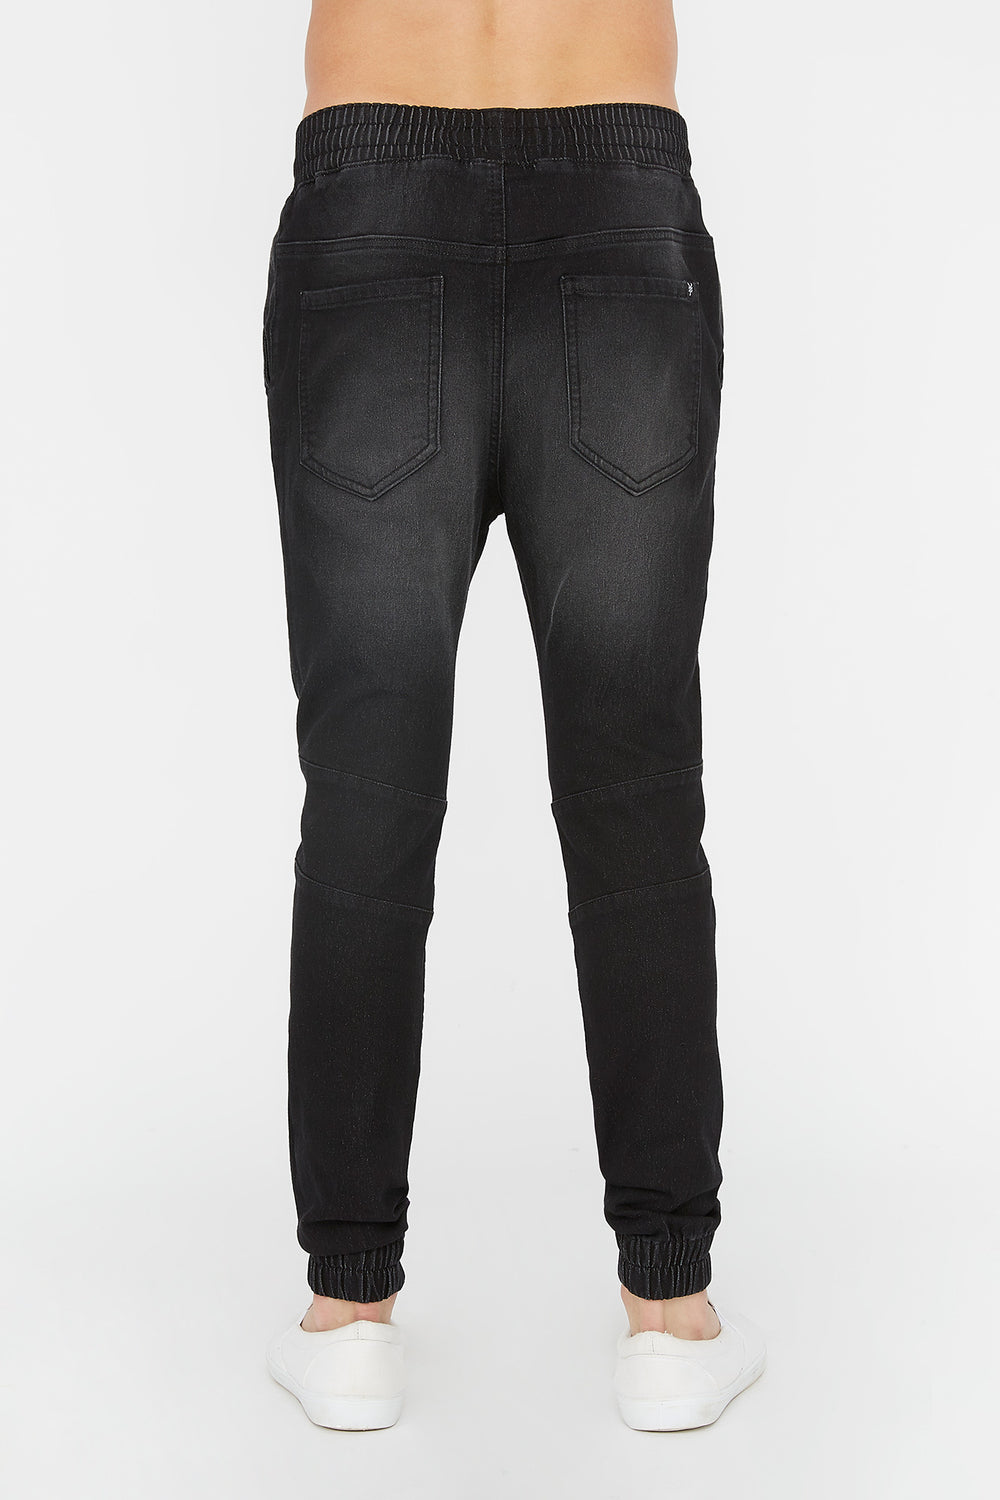 Zoo York Mens Denim Moto Jogger Black